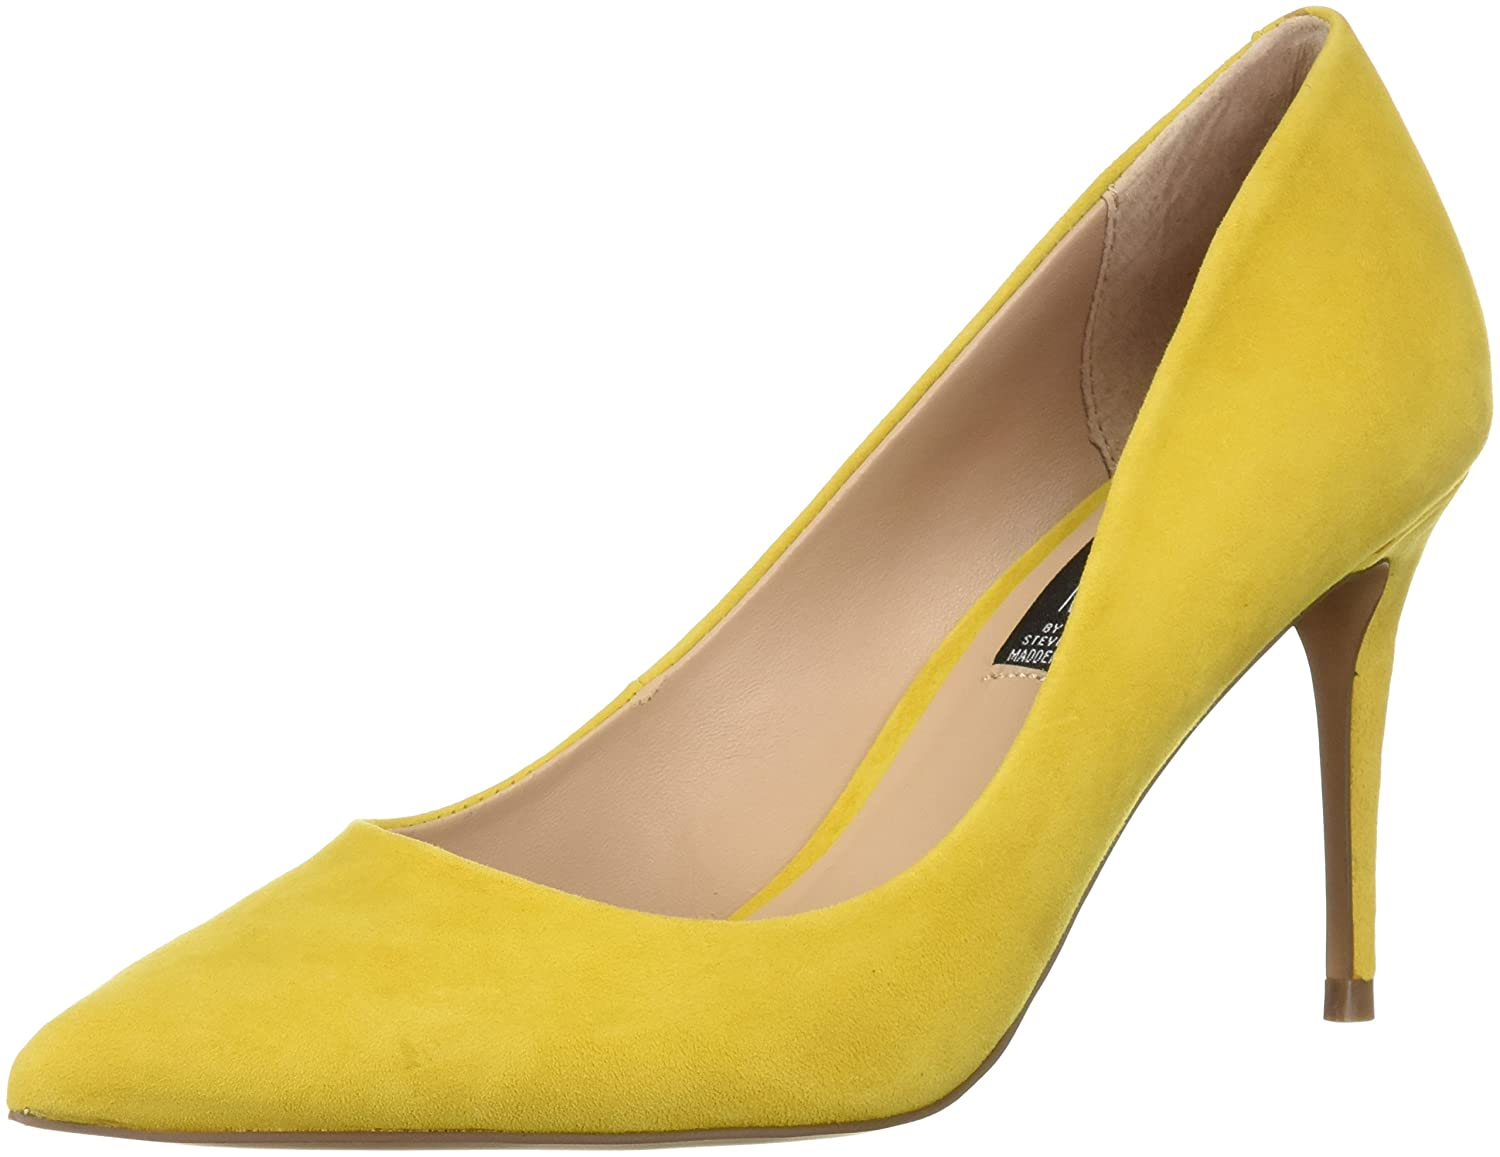 STEVEN by Steve Madden Women's Local Pump B077HZG5ND 8 B(M) US|Yellow Suede